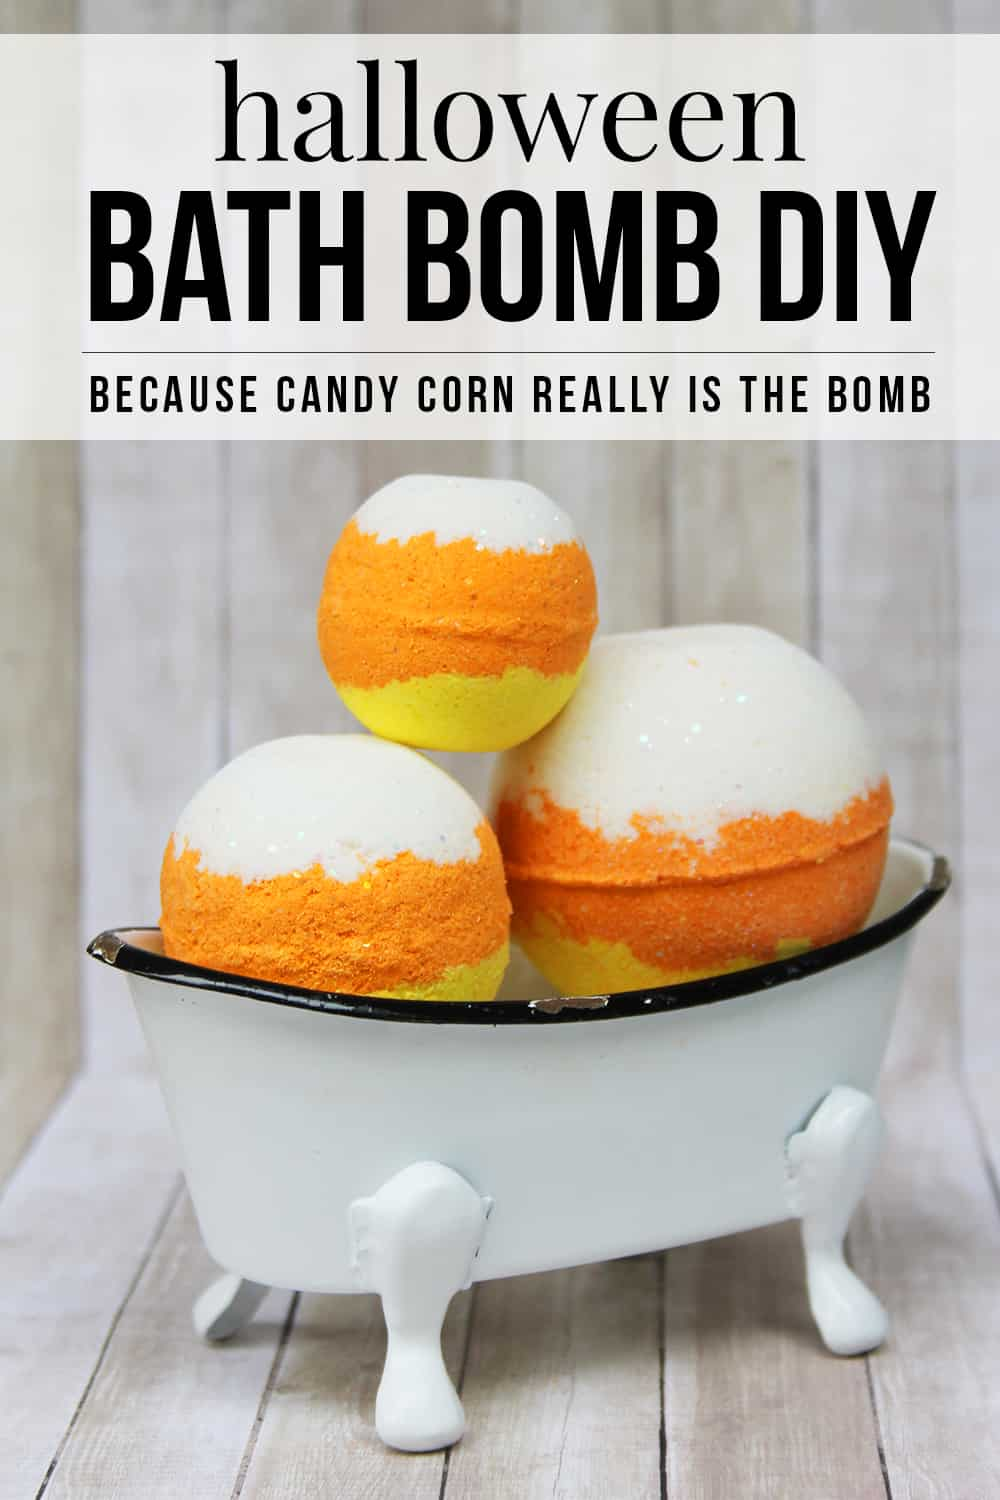 This unique non-candy Halloween party favor idea cannot be missed! This Candy Corn Bath Bomb DIY includes step-by-step instructions and is a super fun Halloween candy corn craft idea. You'll want to make these for yourself and toss them in your Halloween treat bags! #Halloween #CandyCorn #BathBomb #BathBombDIY #HalloweenParty #HalloweenPartyFavor